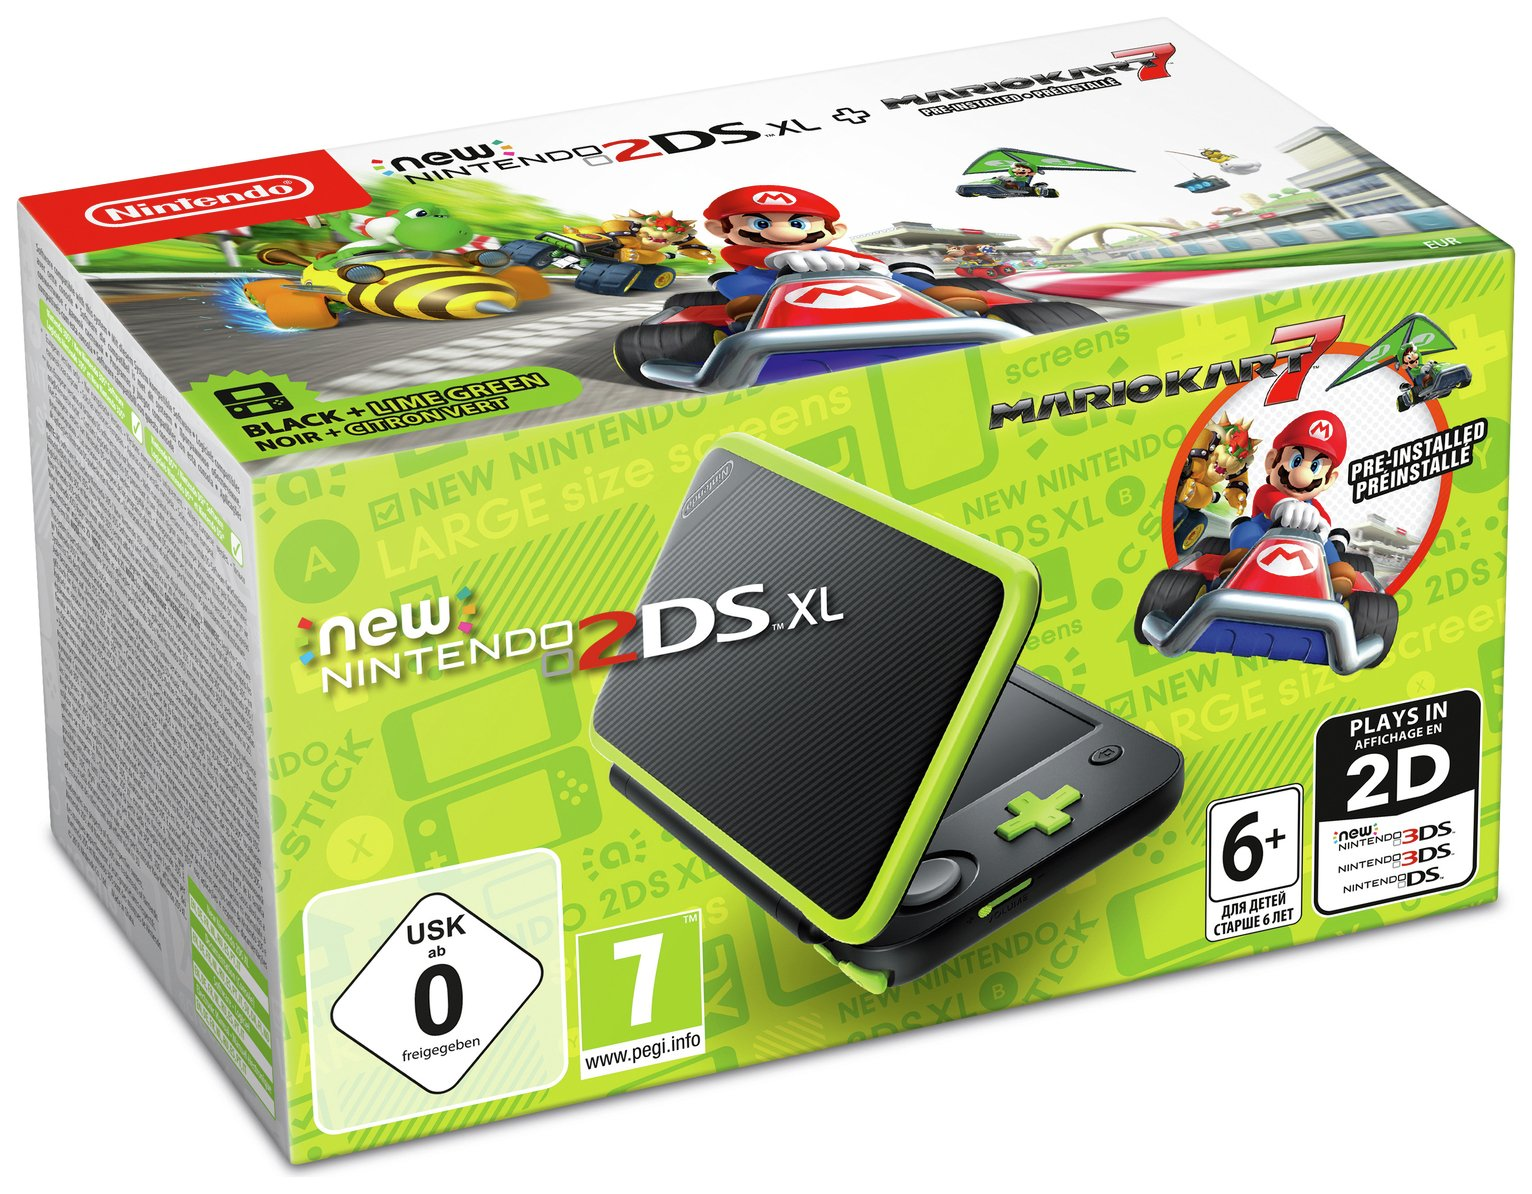 Nintendo 2DS XL Console with Mario Kart 7